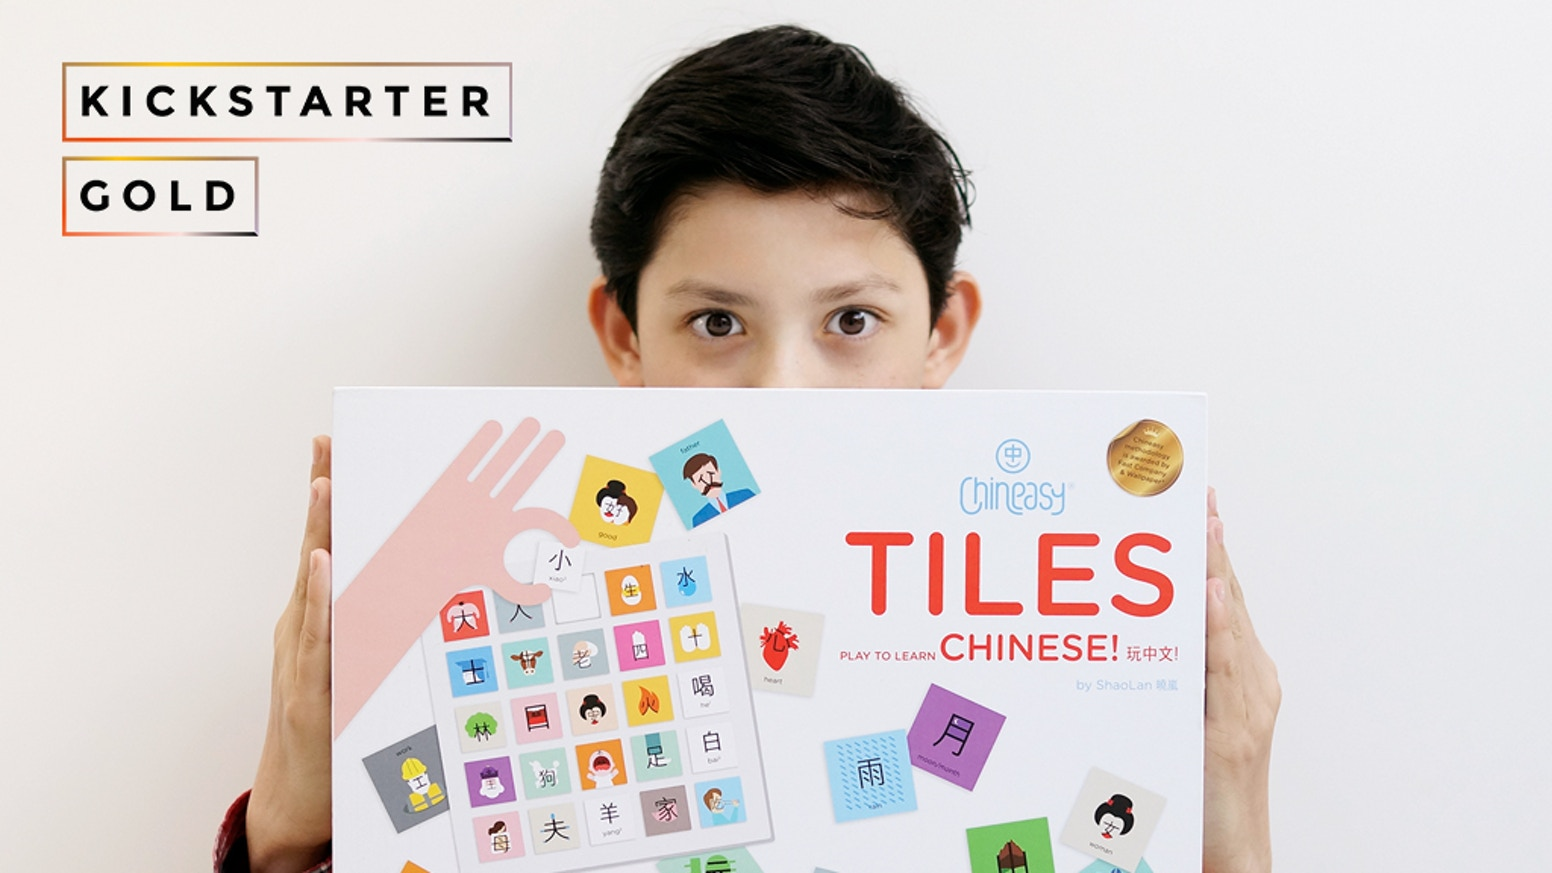 Chineasy Tiles is an award-winning game that makes Chinese fun and easier to learn than ever. Let's play to learn Chinese!